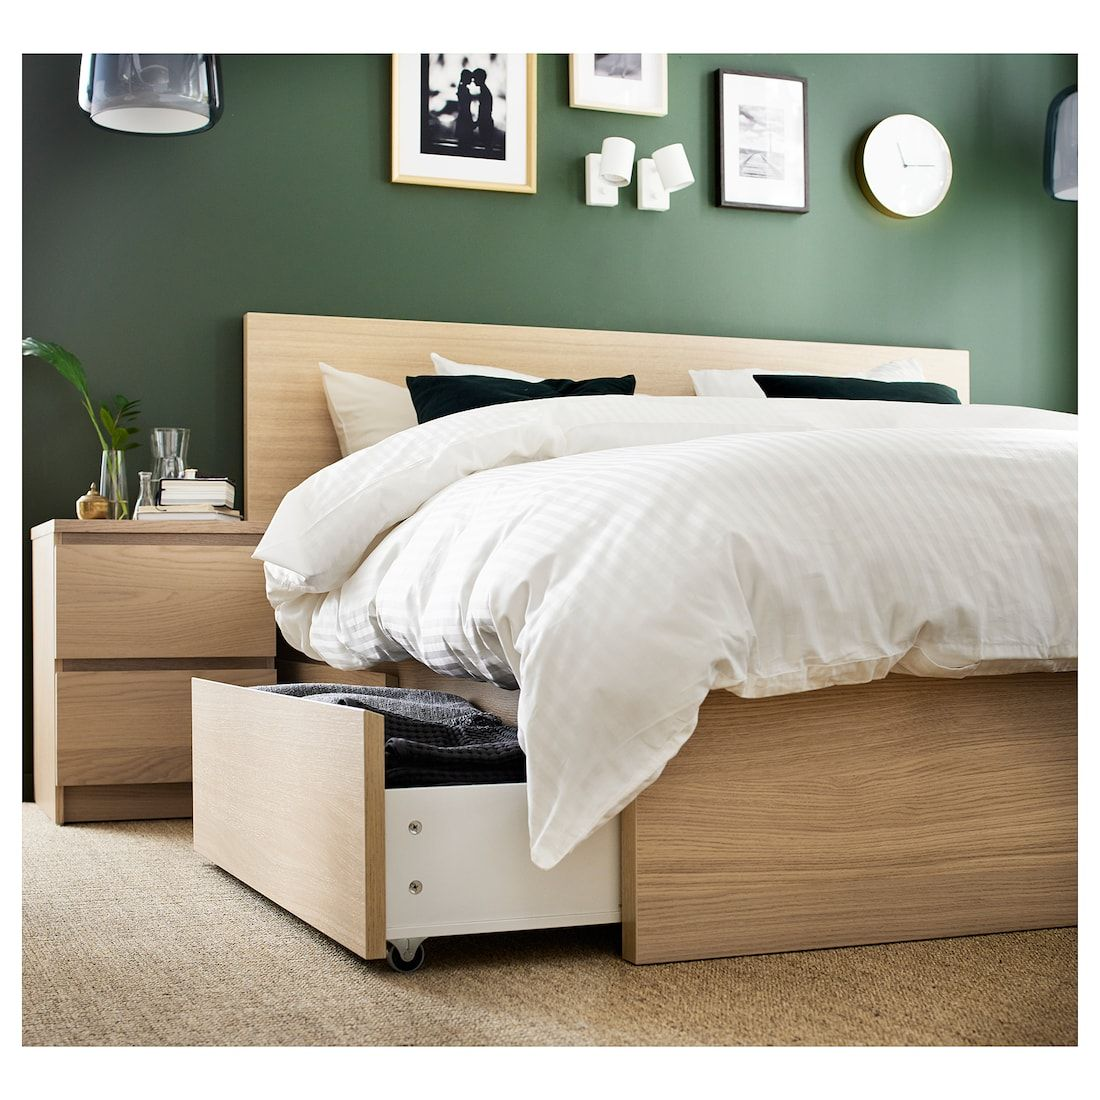 Malm High Bed Frame 4 Storage Boxes White Stained Oak Veneer